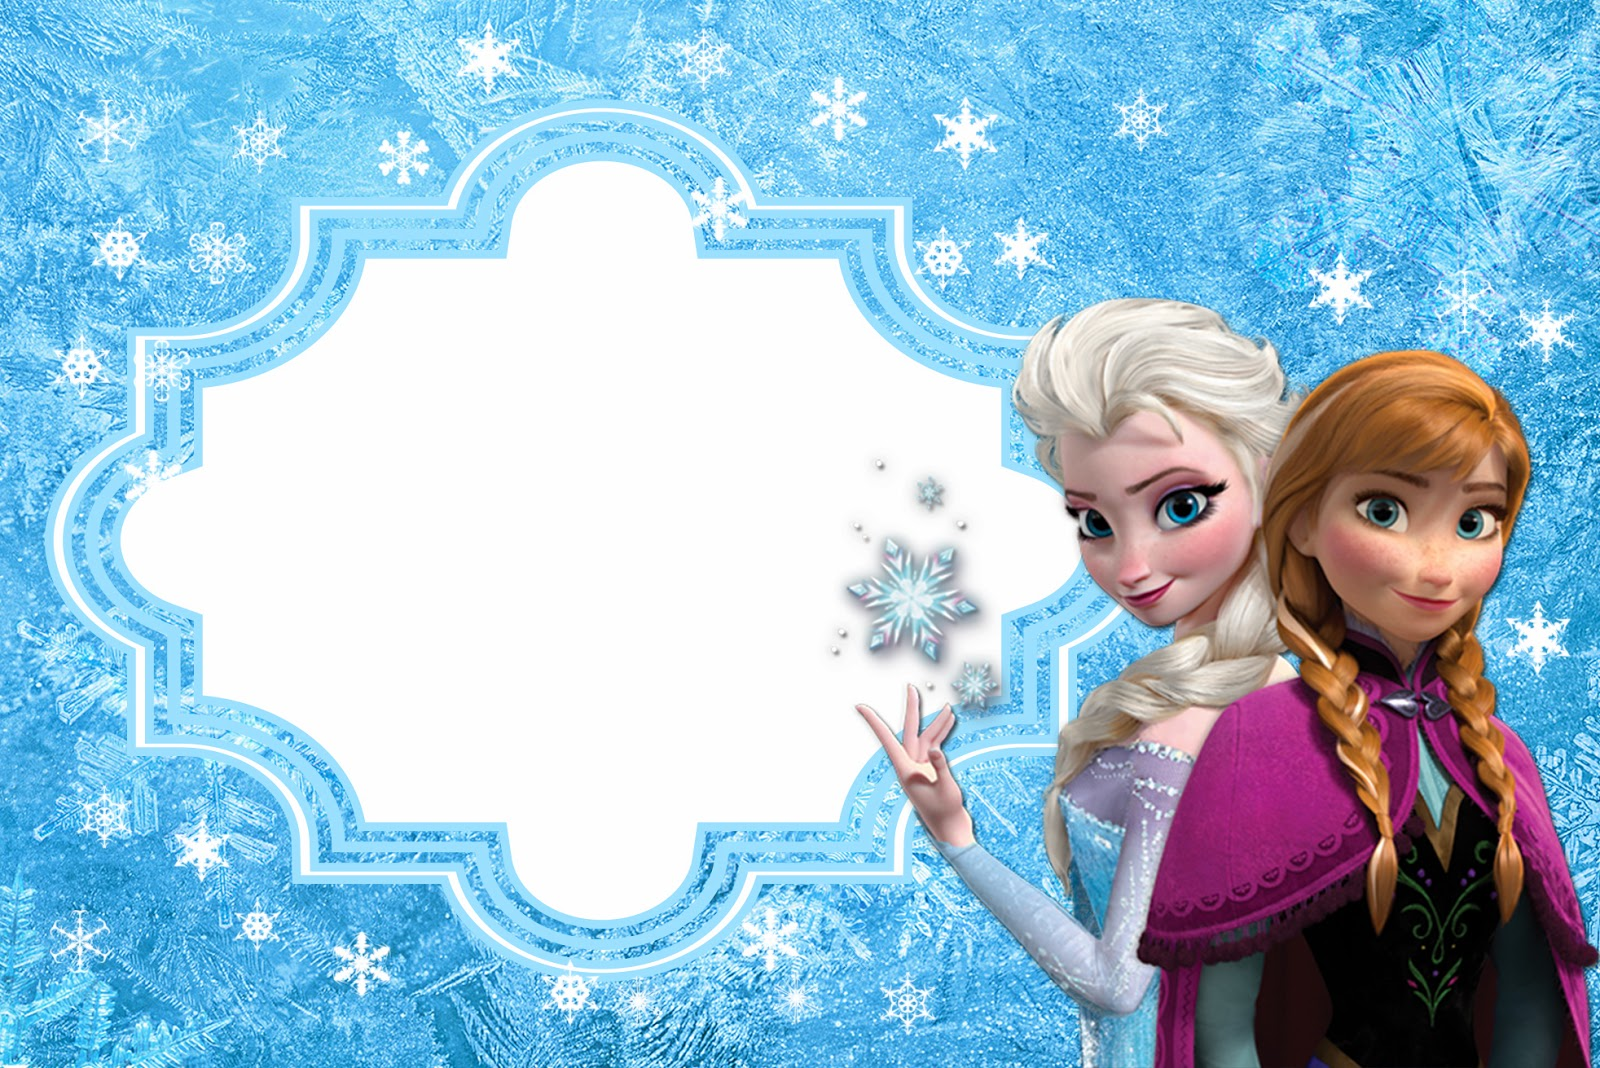 photo regarding Frozen Invitations Printable called Frozen: Cost-free Printable Playing cards or Get together Invites. - Oh My